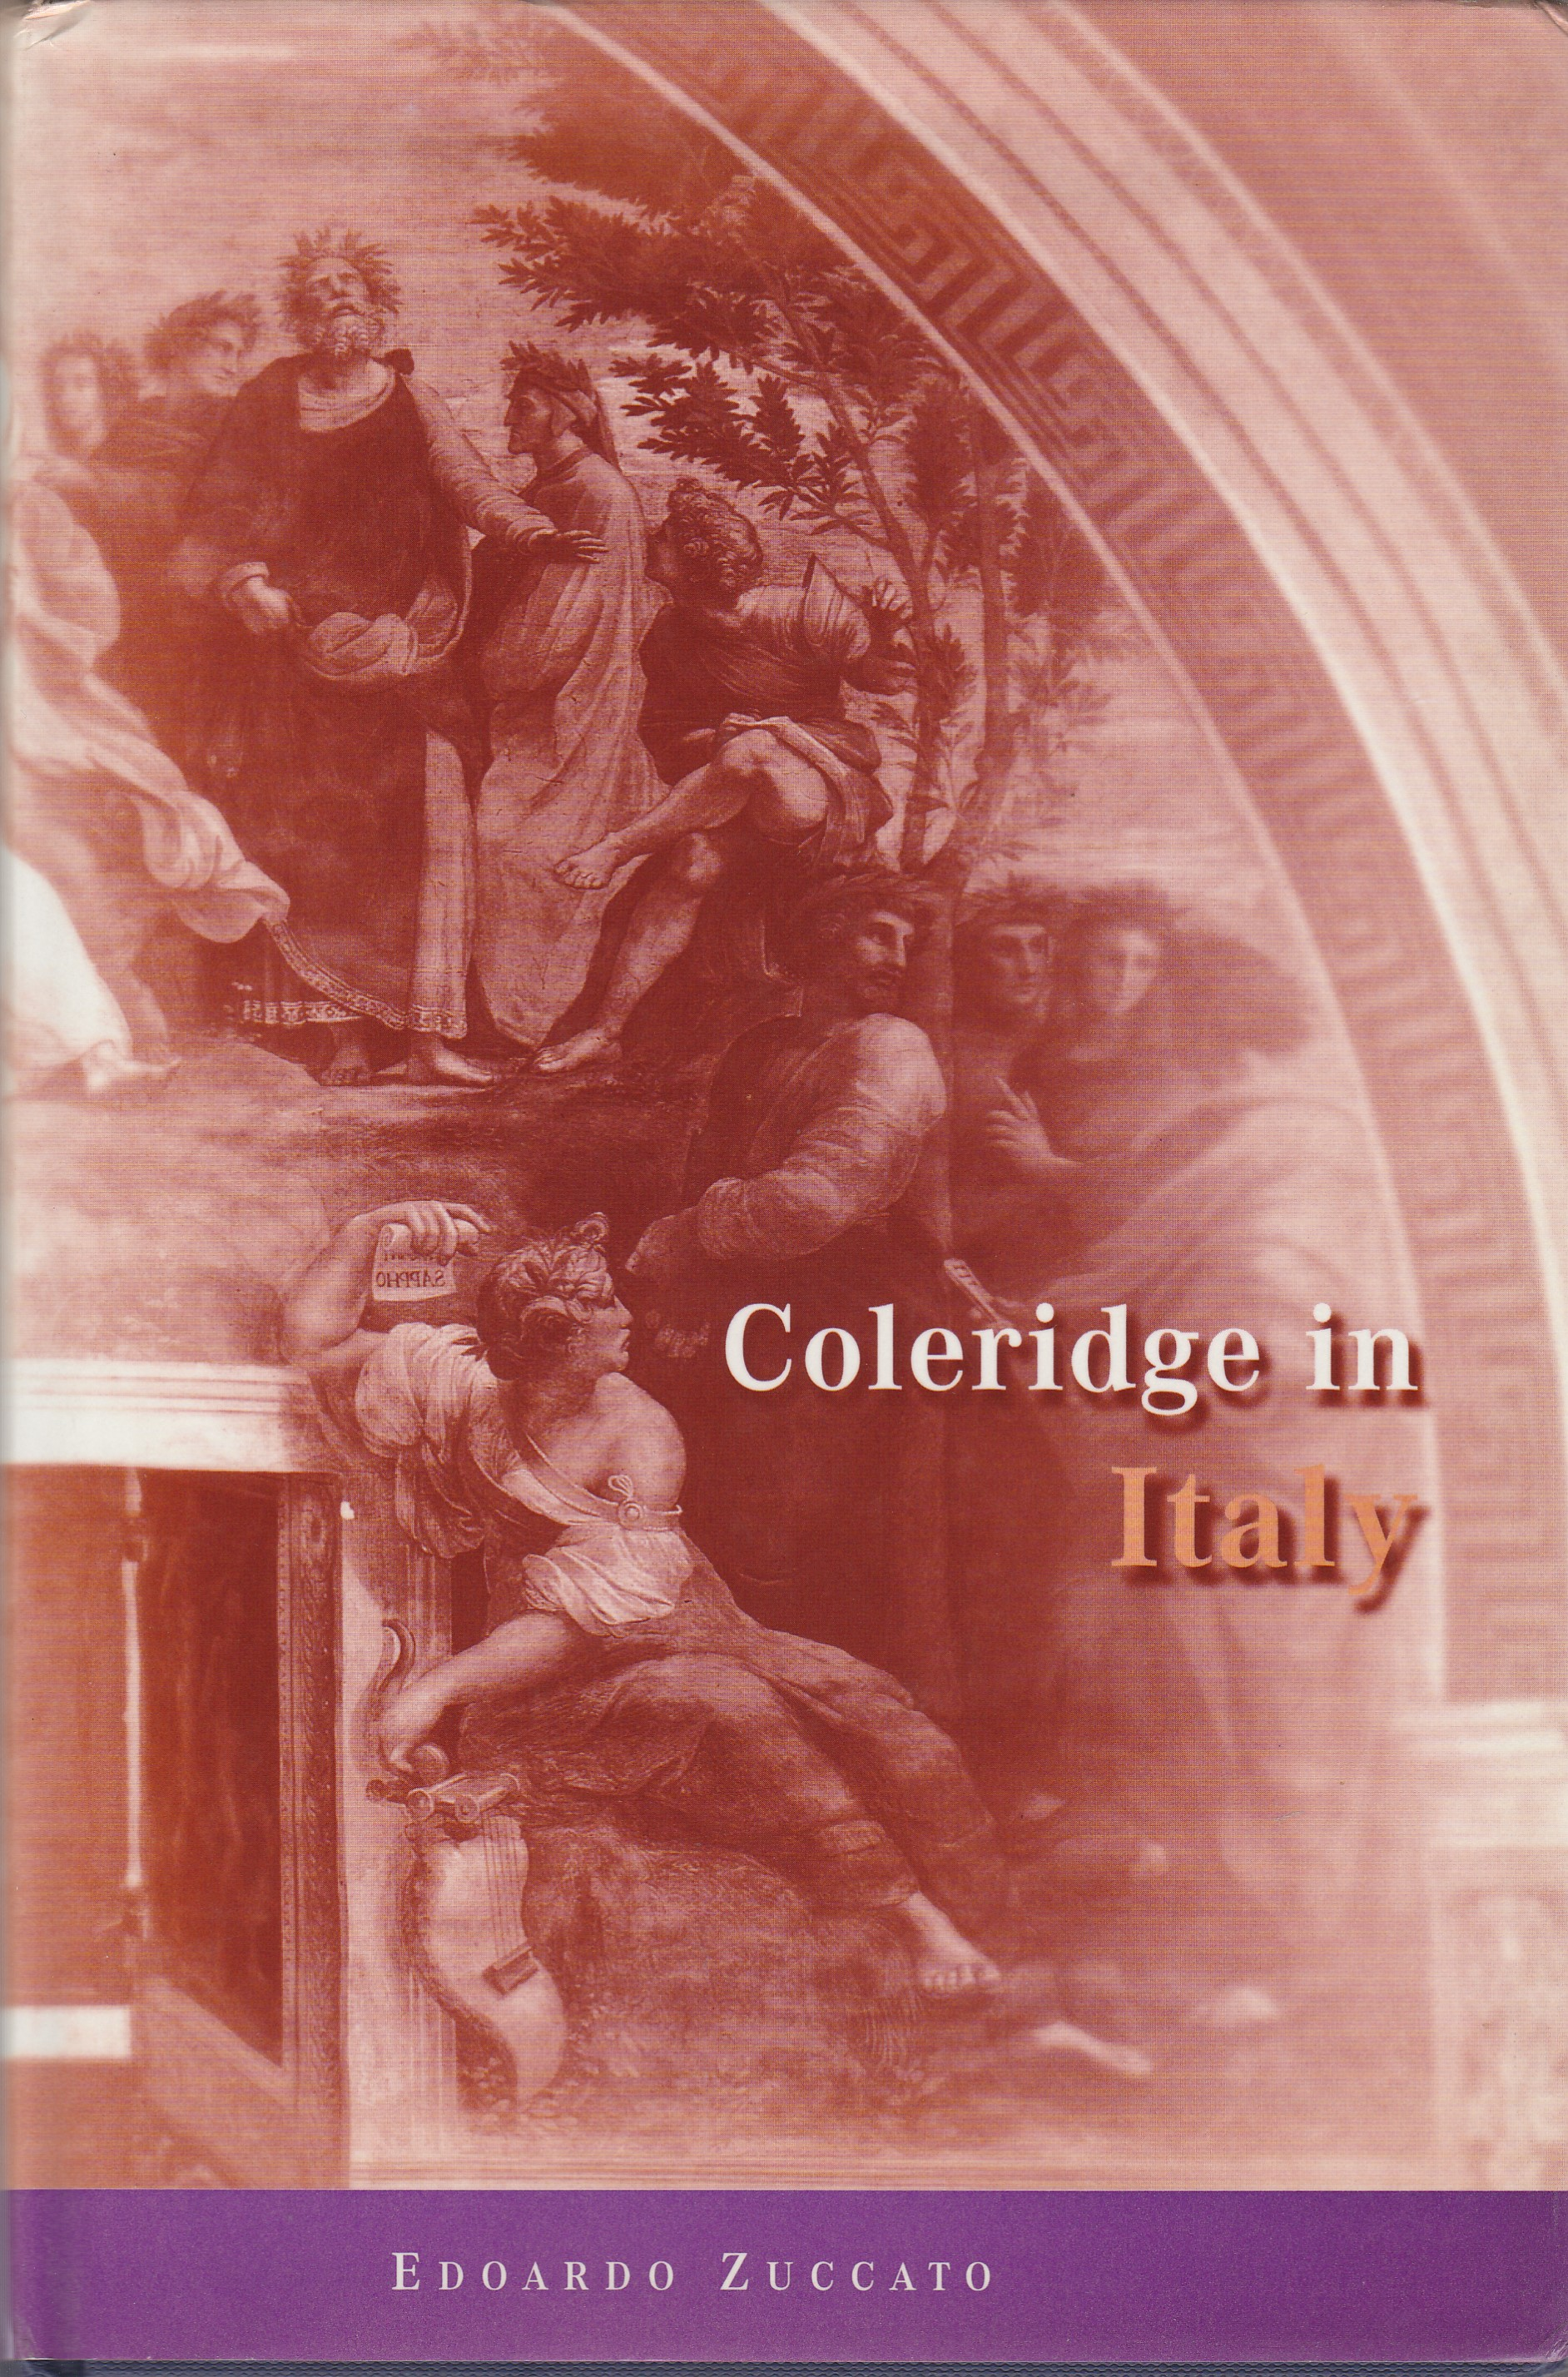 Coleridge in Italy